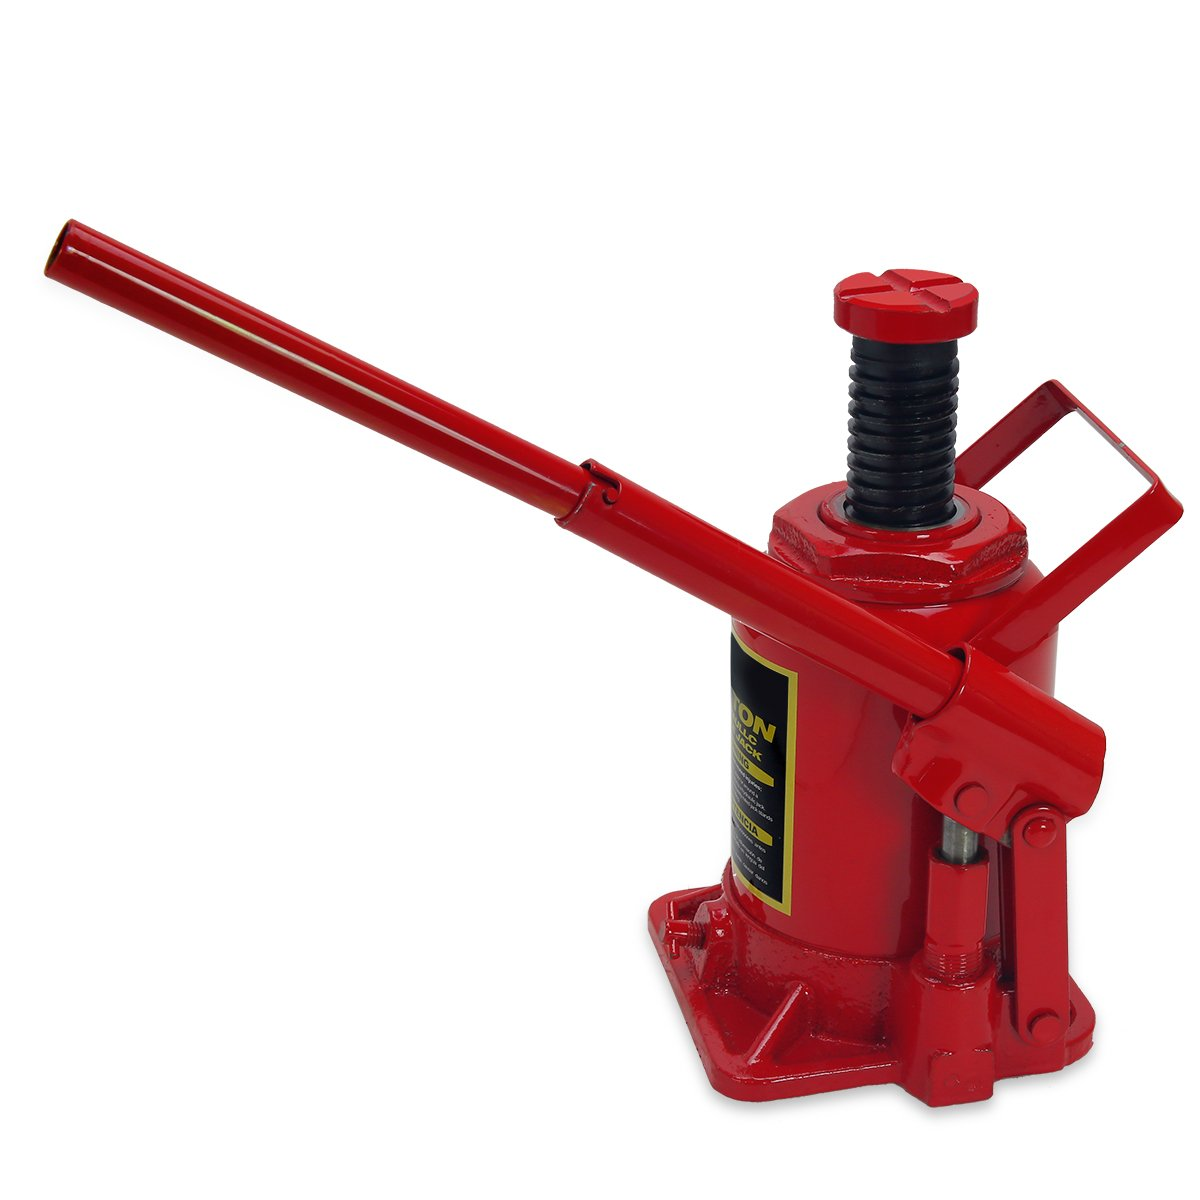 XtremepowerUS Hydraulic Bottle Jack (20 Ton) Portable Hydraulic Jack Lift Height Farm RV Truck Equipment Automotive Shop